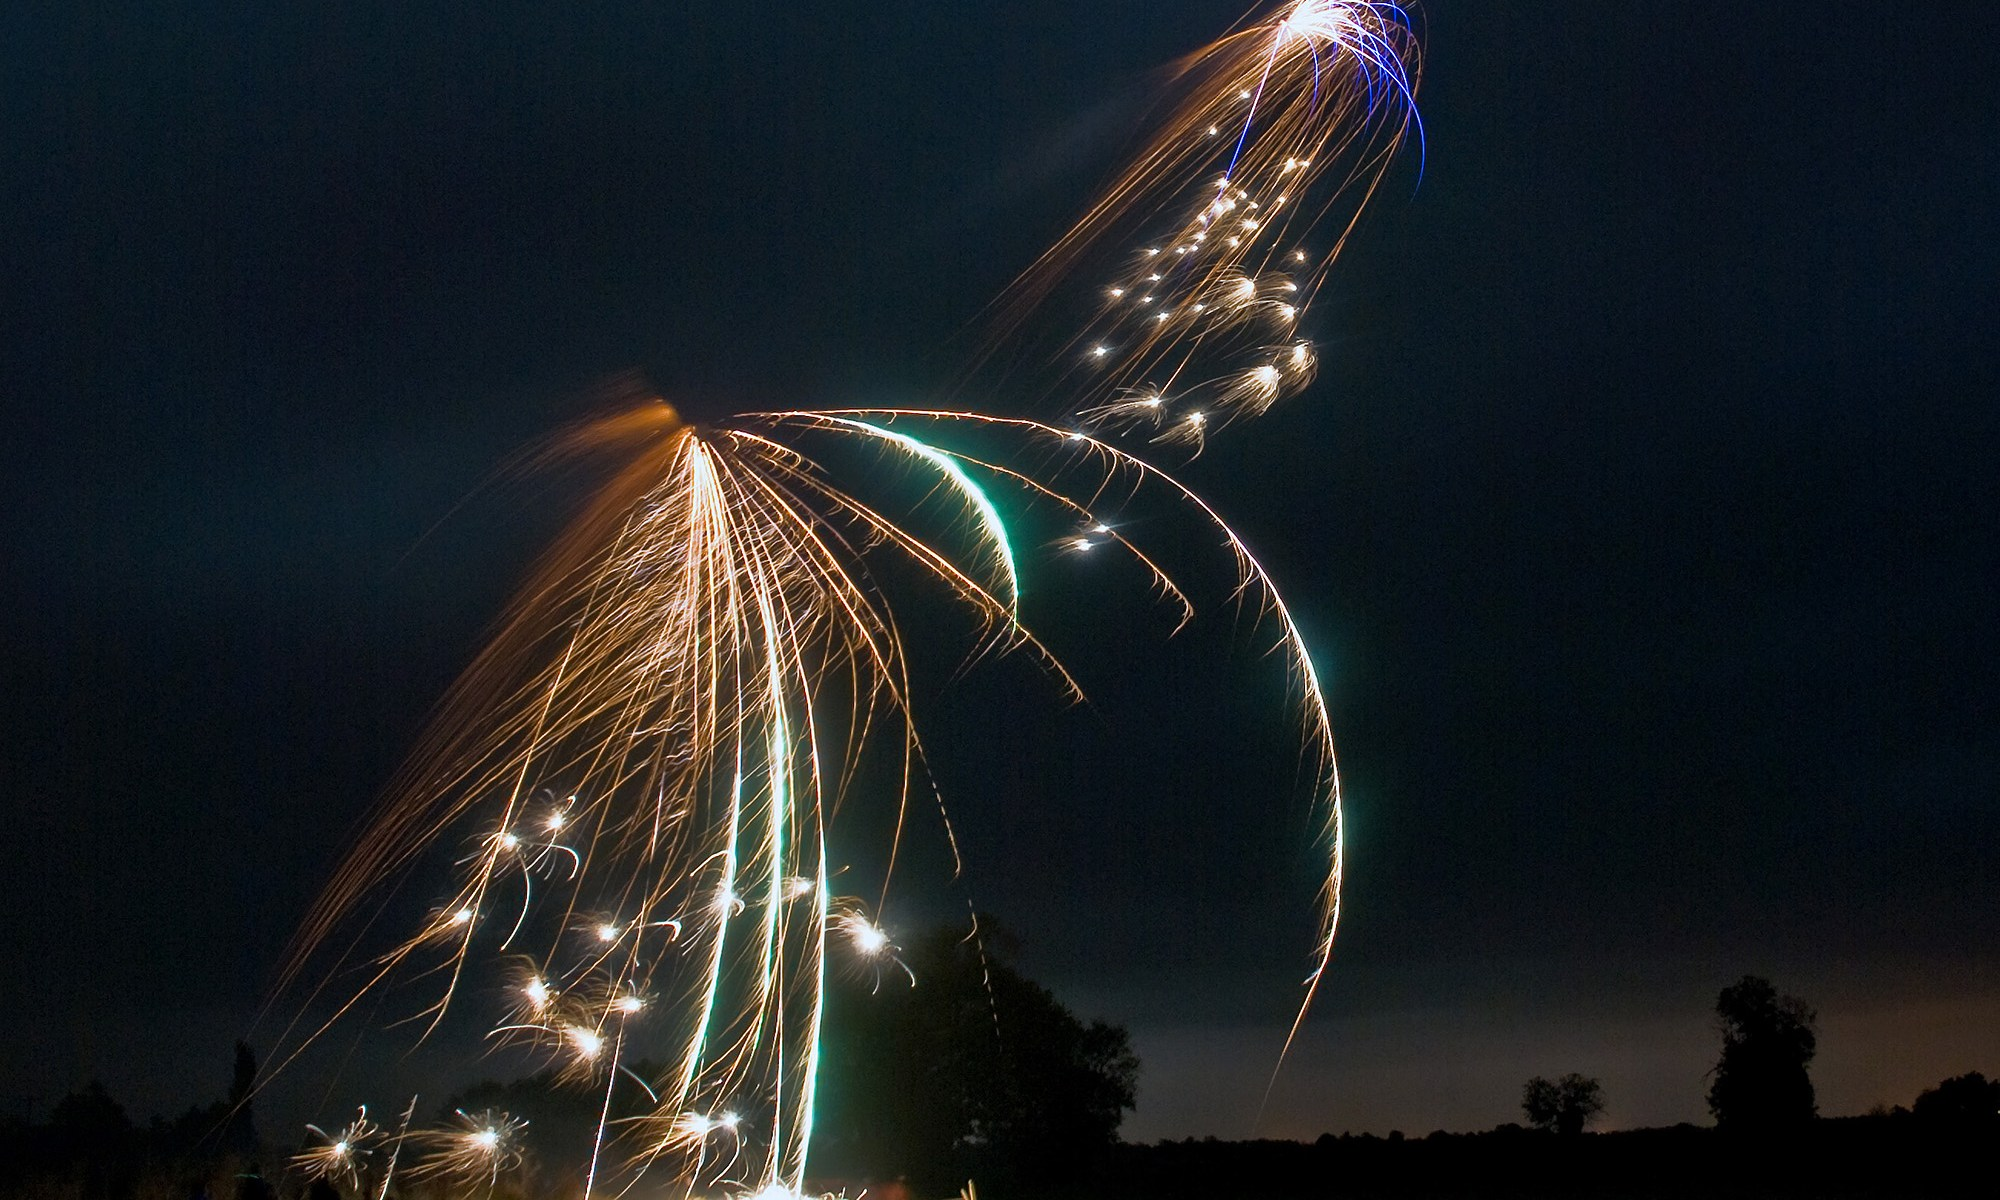 Fireworks in Horbling, Lincolnshire